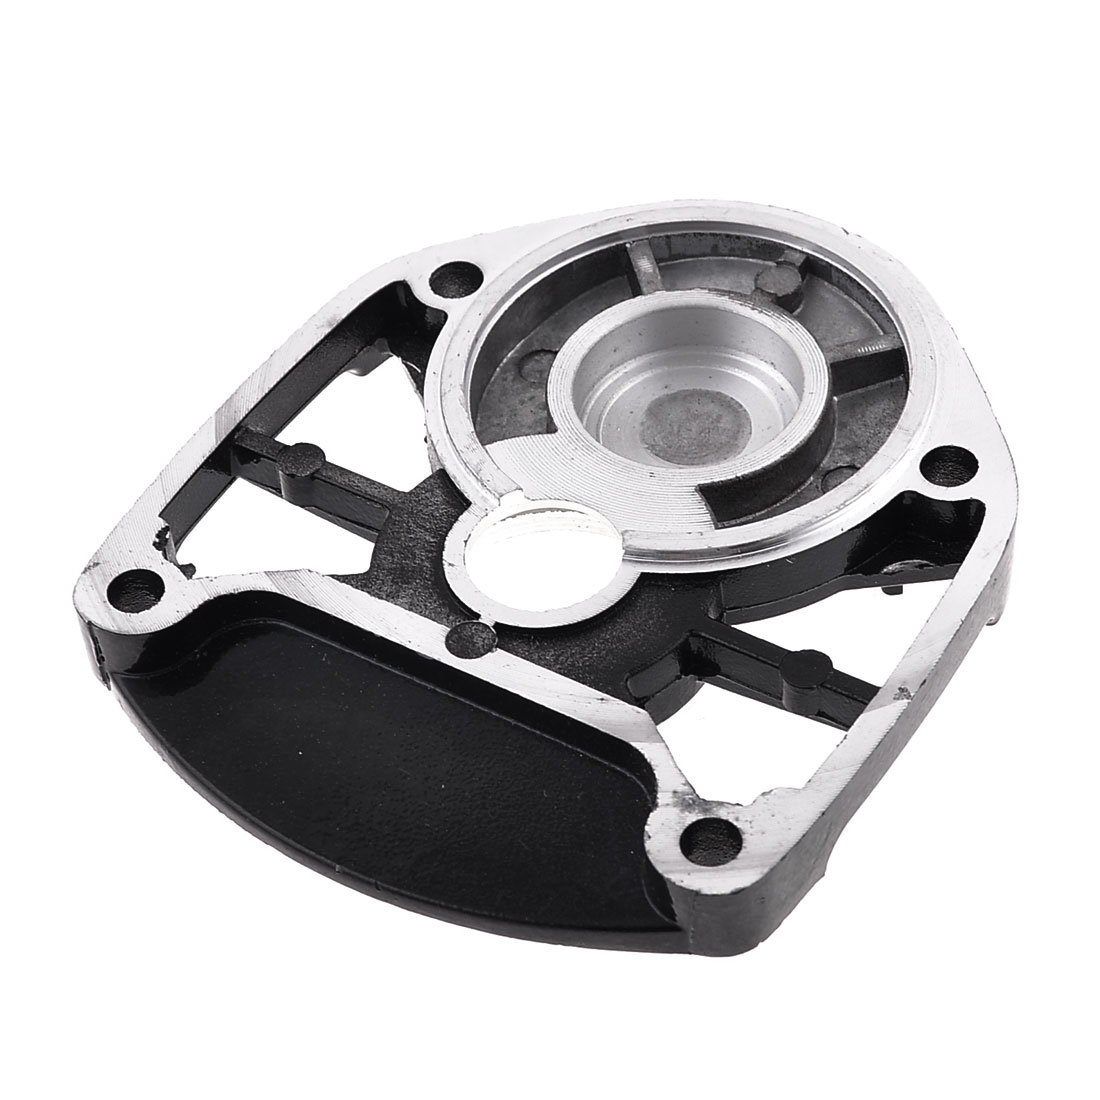 Aluminum Alloy Electric Pick Spare Parts Middle Cover for Makita 0810